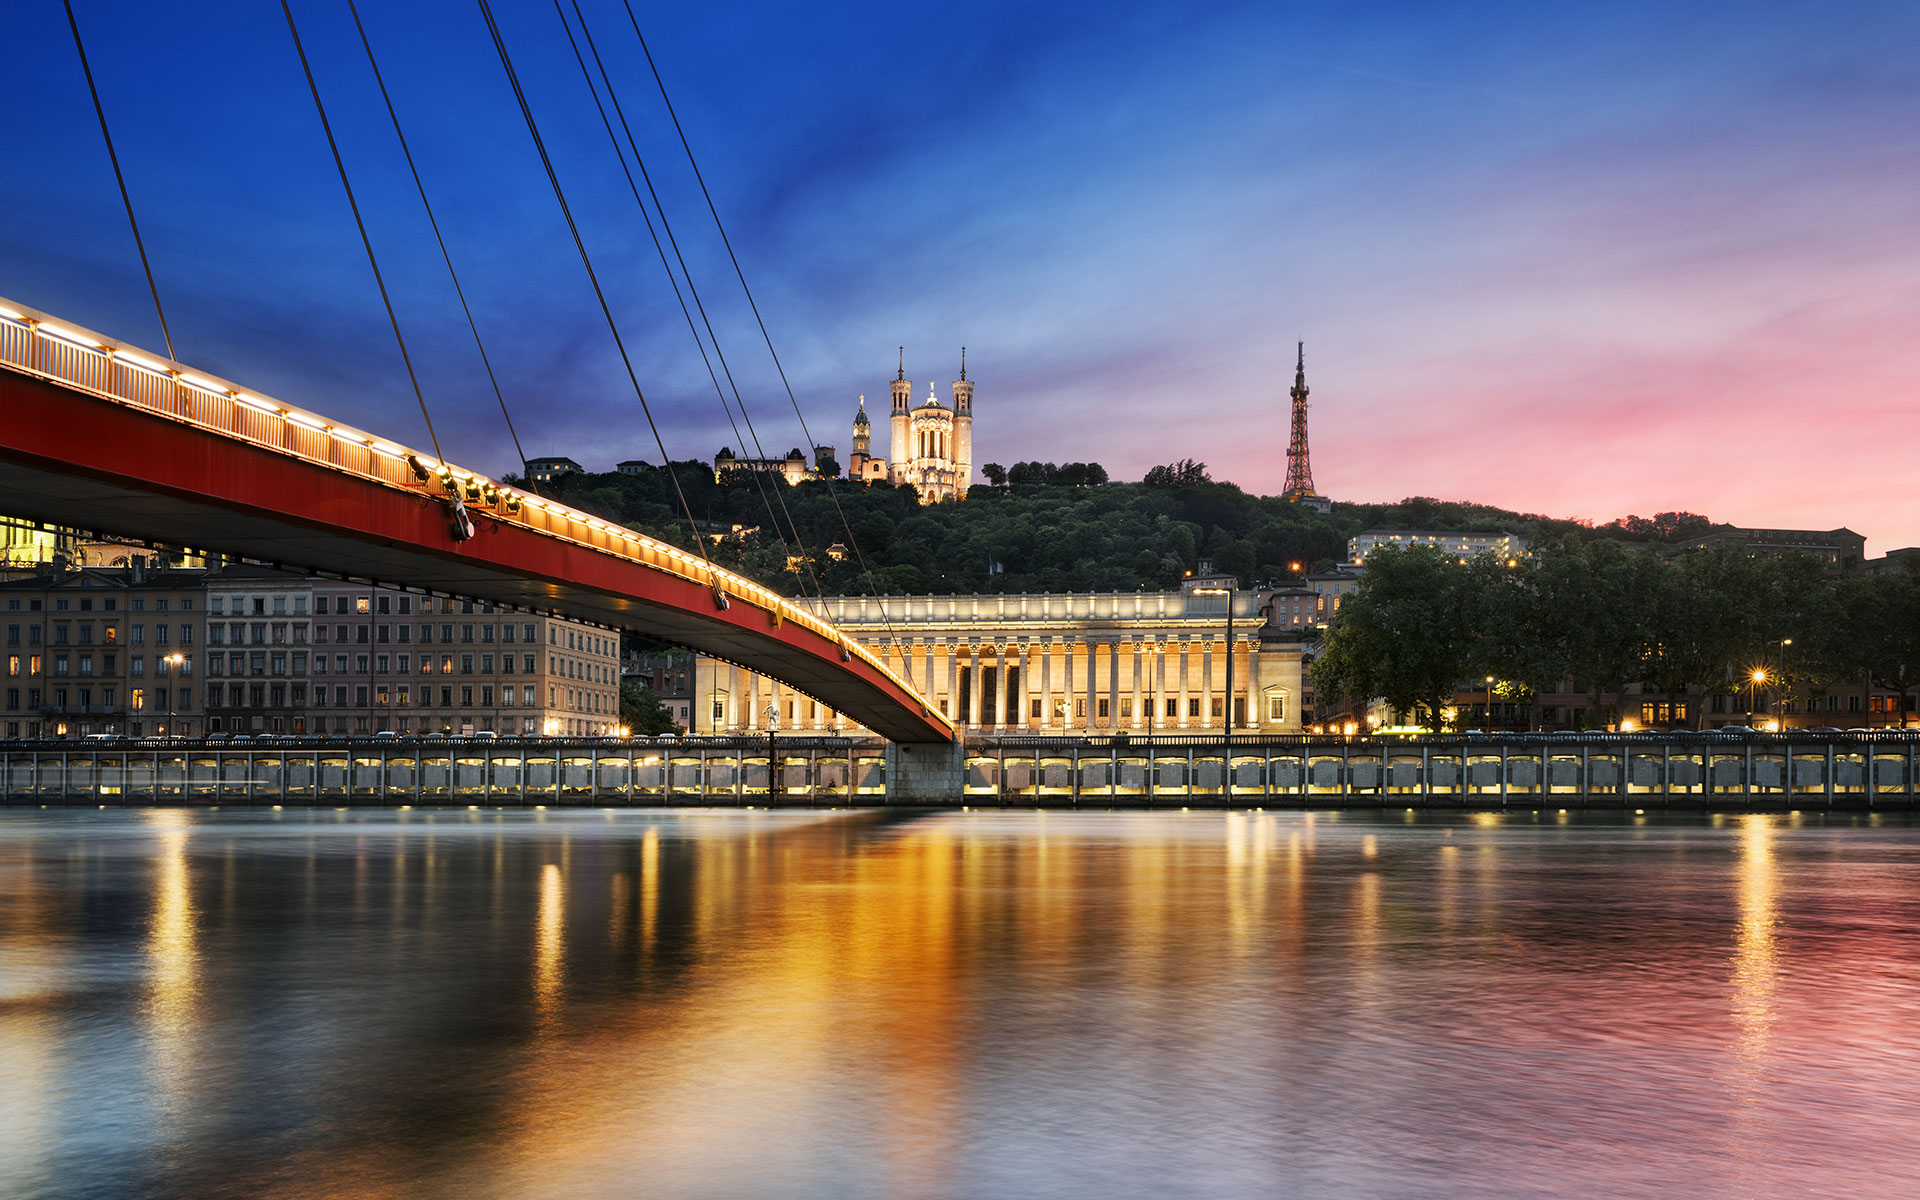 The Saone River in Lyon at sunset (photo © Beatrice Preve / dreamstime.com).